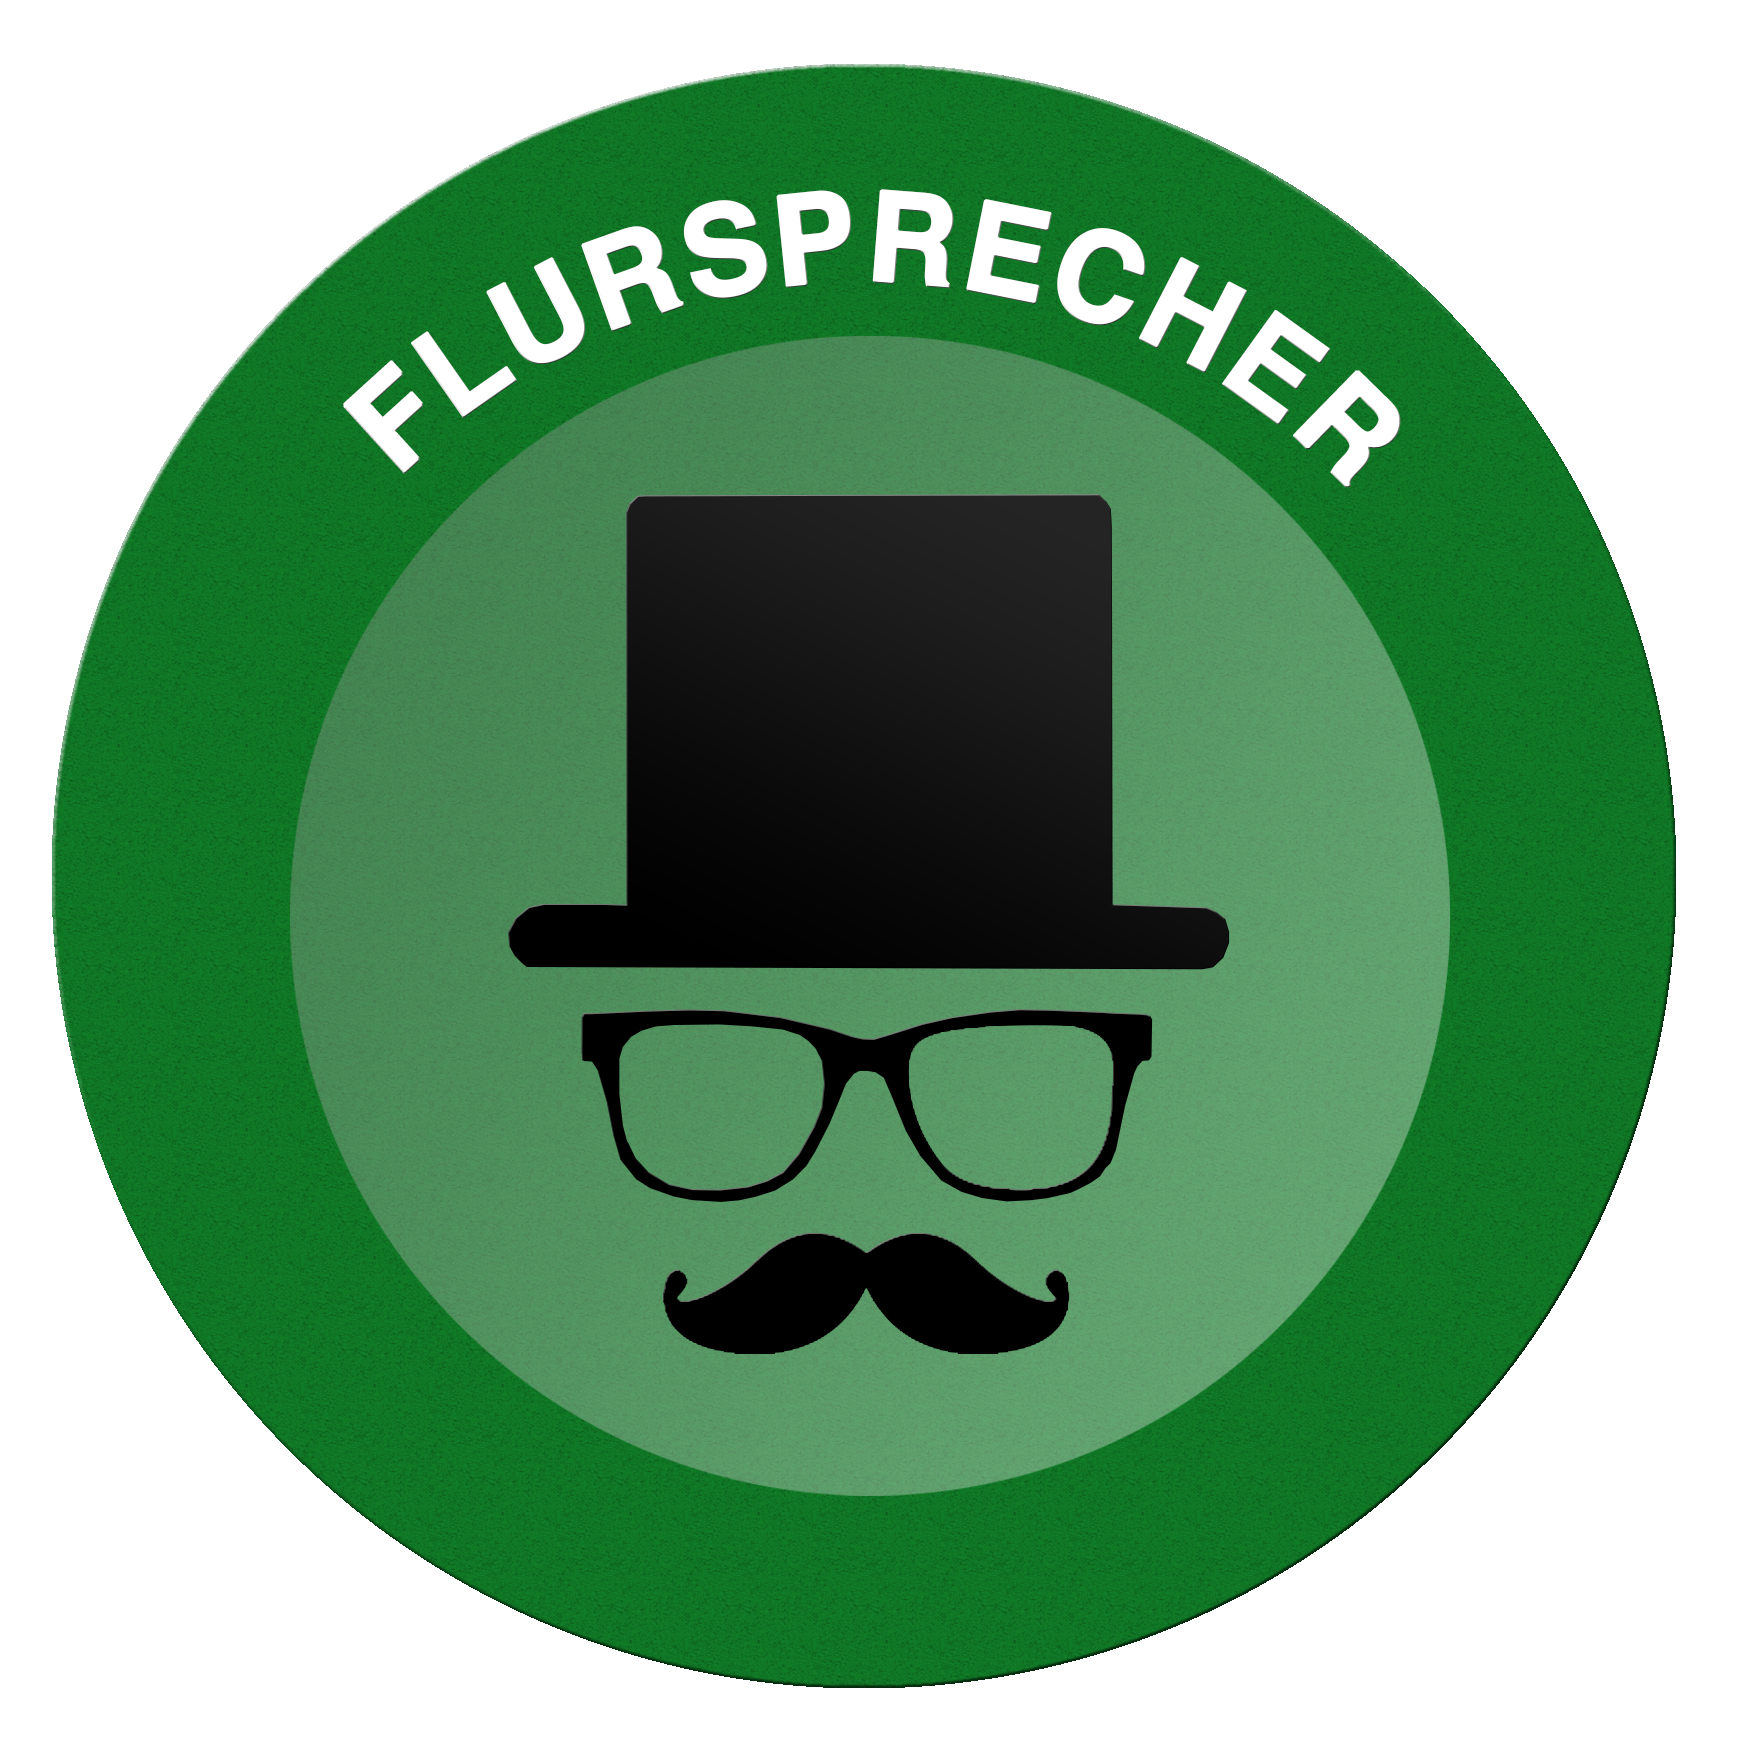 Flursprecher